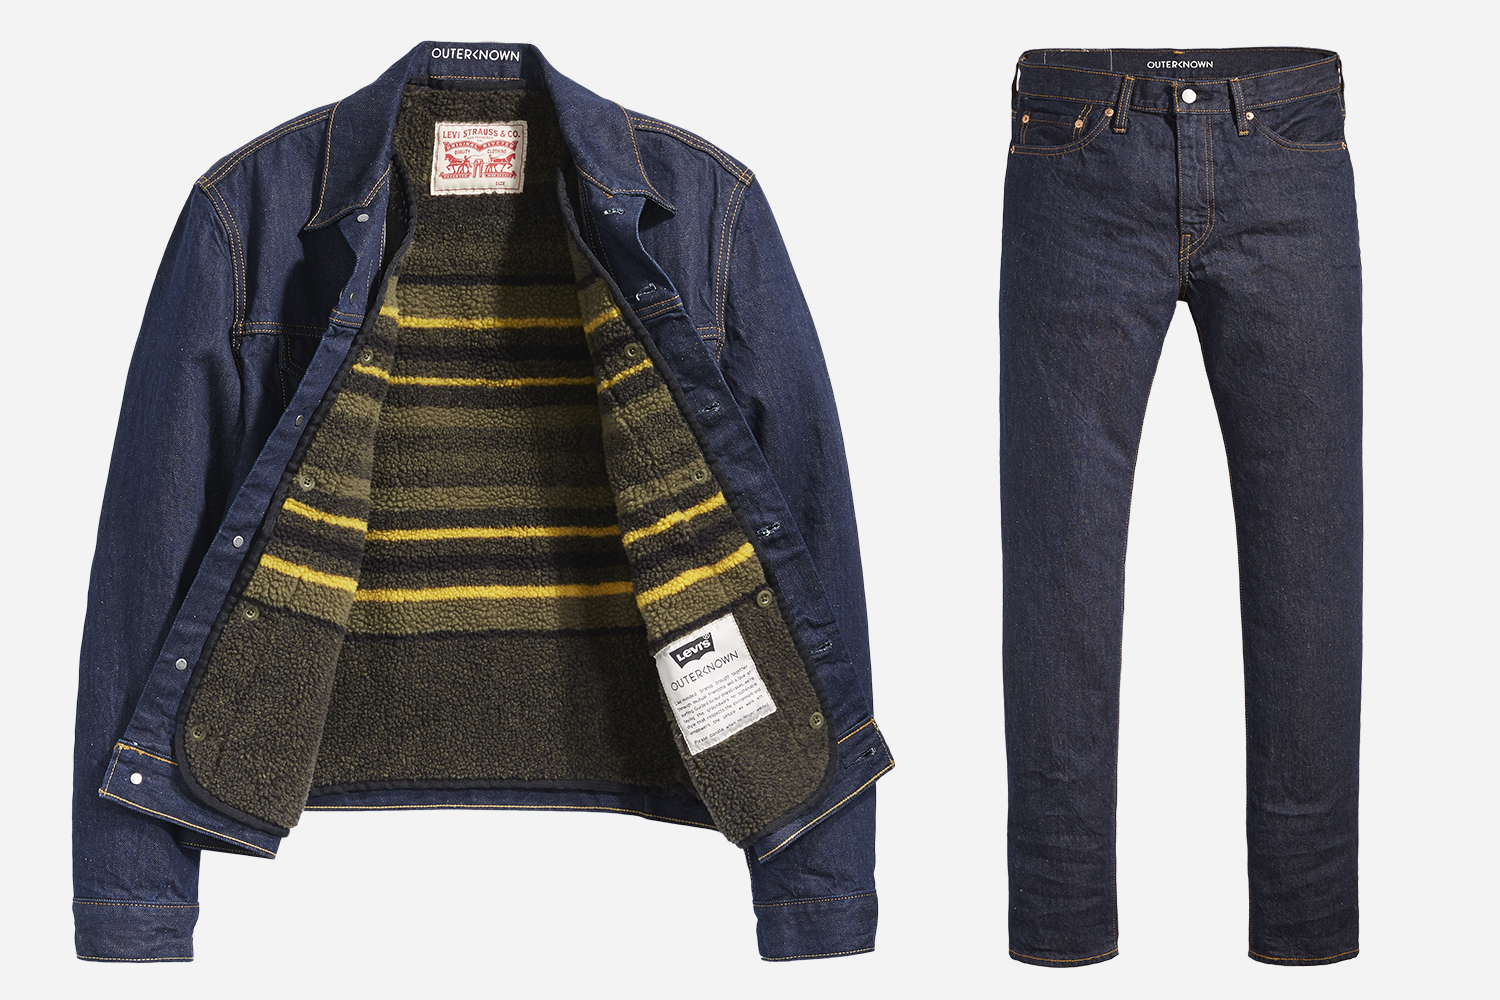 Levi's Wellthread x Outerknown Trucker Jacket and Denim Jeans